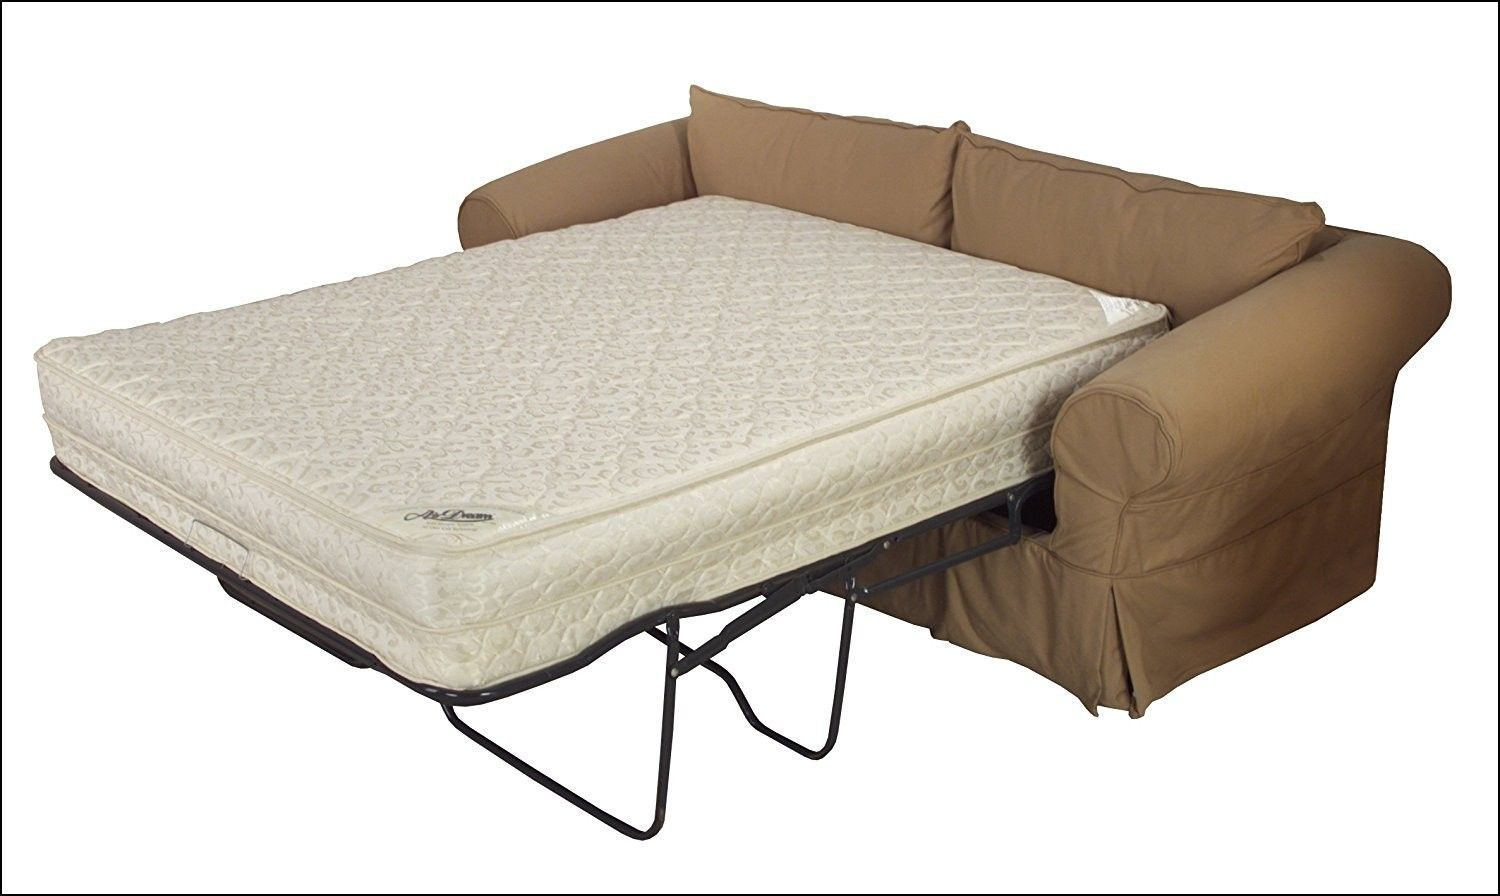 mattress for sleeper sofa. Air Dream Sleeper Sofa Mattress For U